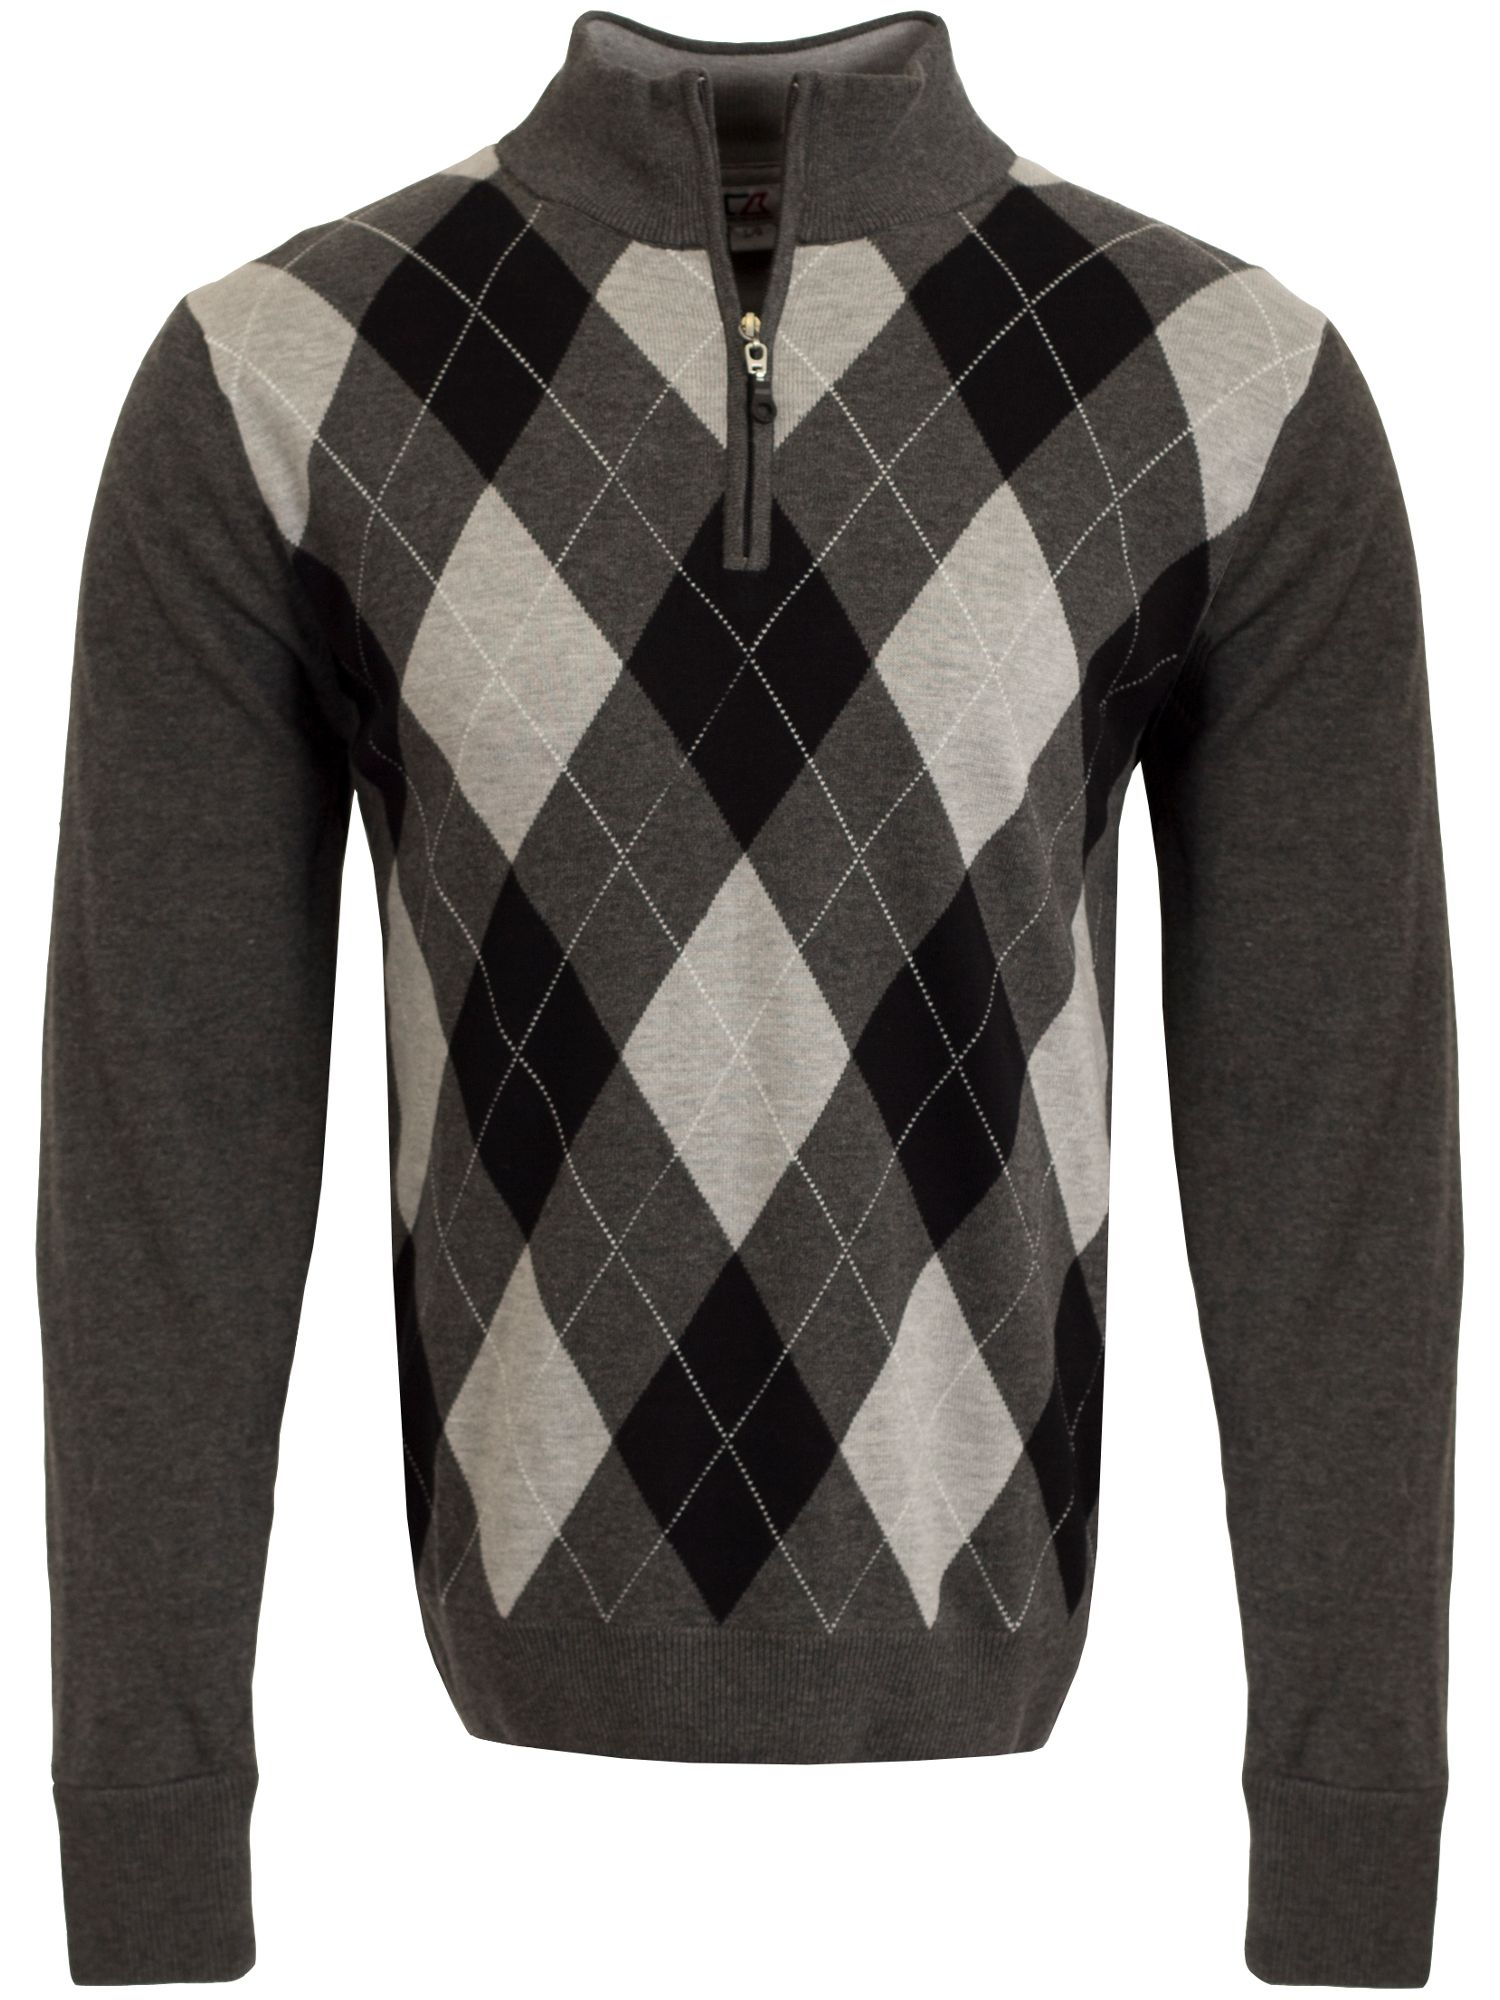 Cutter and Buck Men's Cutter and Buck Argyle WindBlock Sweater, Charcoal